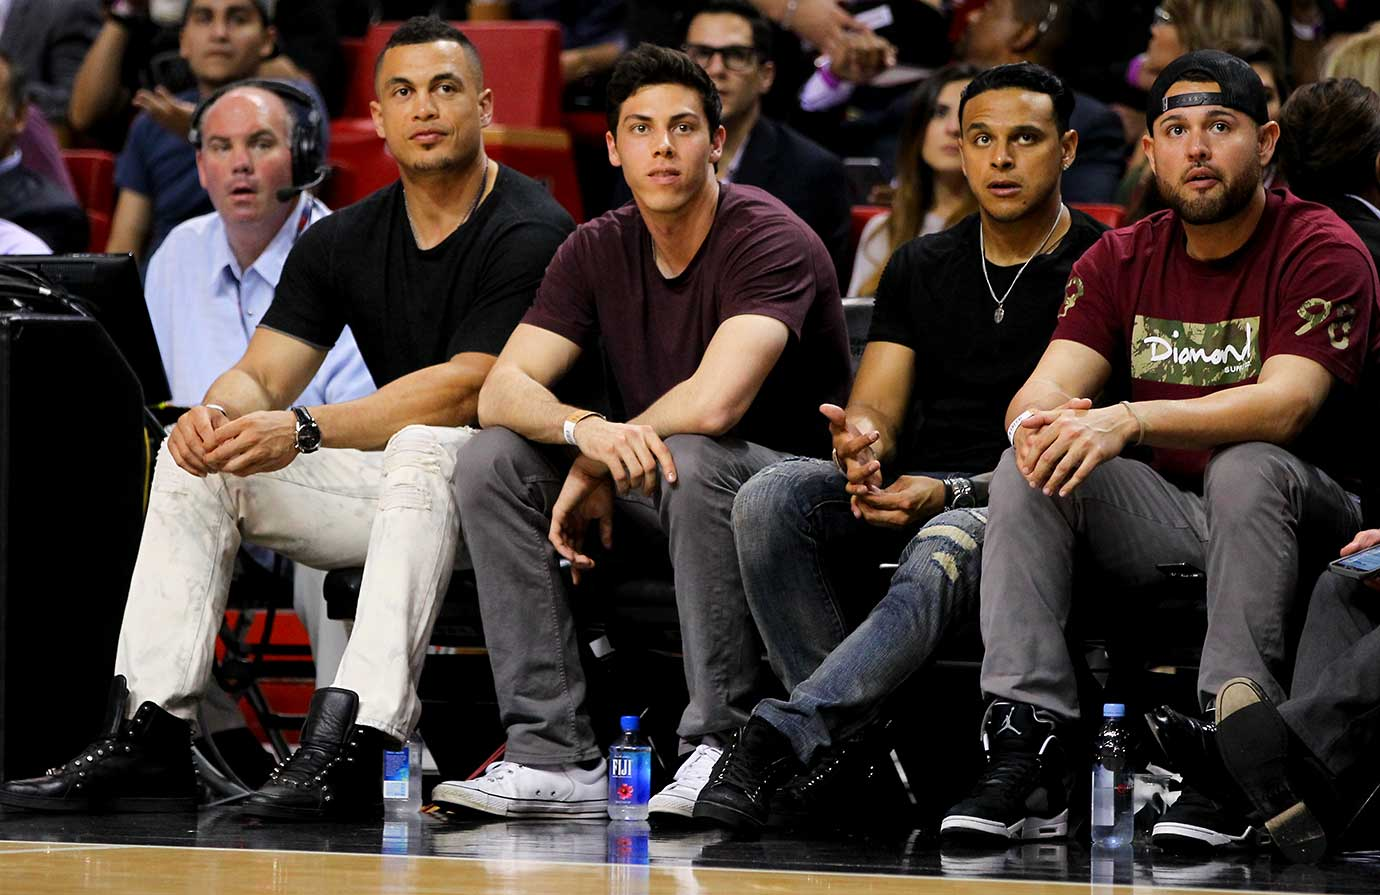 Major leaguers Giancarlo Stanton, Christian Yelich, A. J. Ramos and Ricky Nolasco at the Heat-Warriors game.